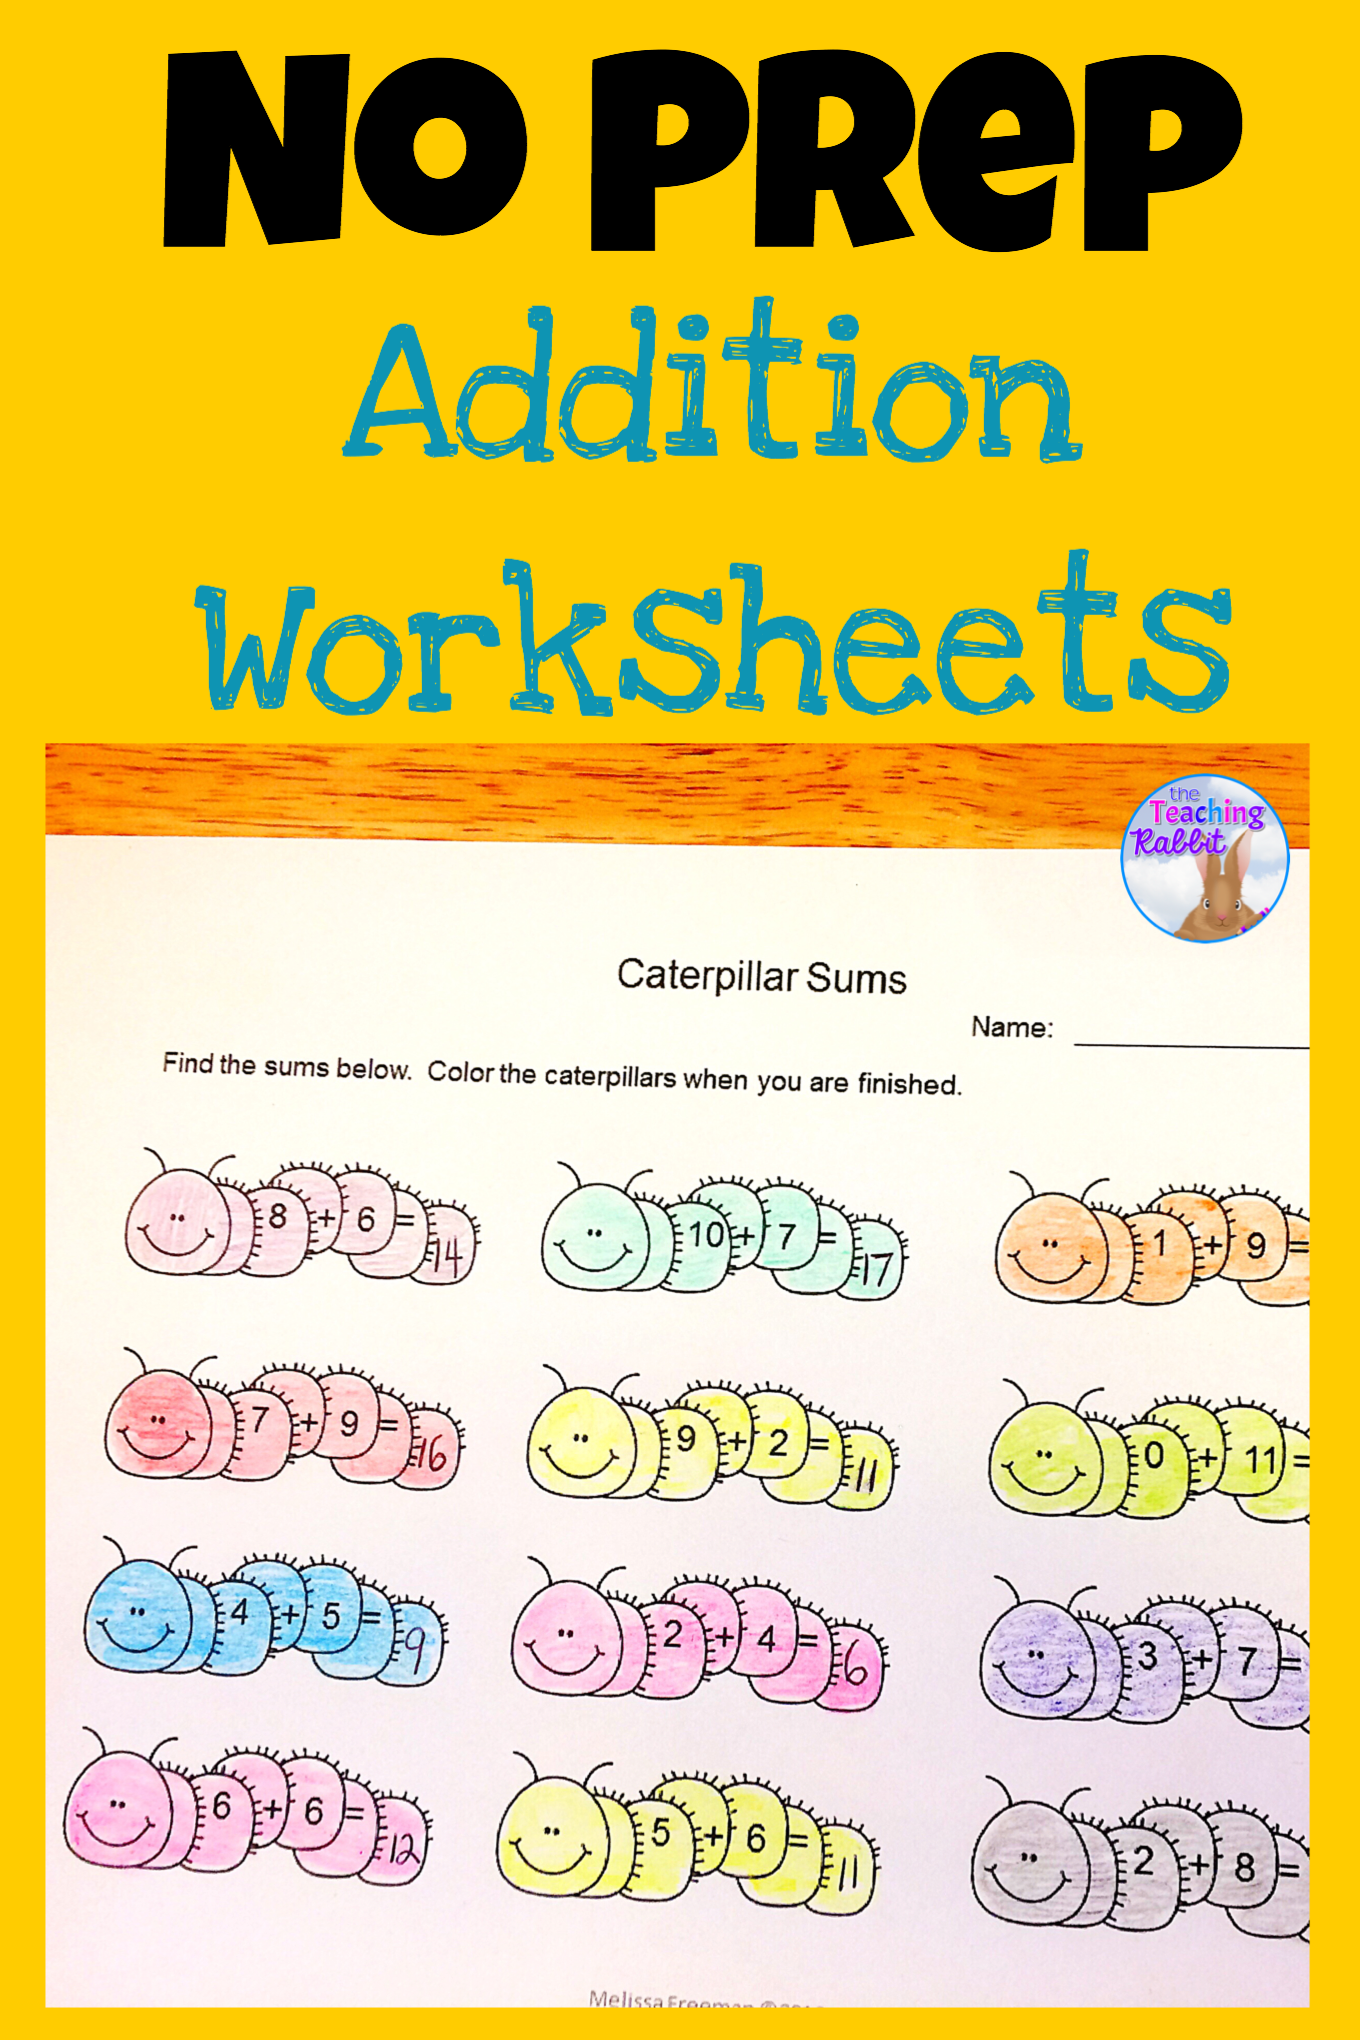 No Prep Addition Worksheets